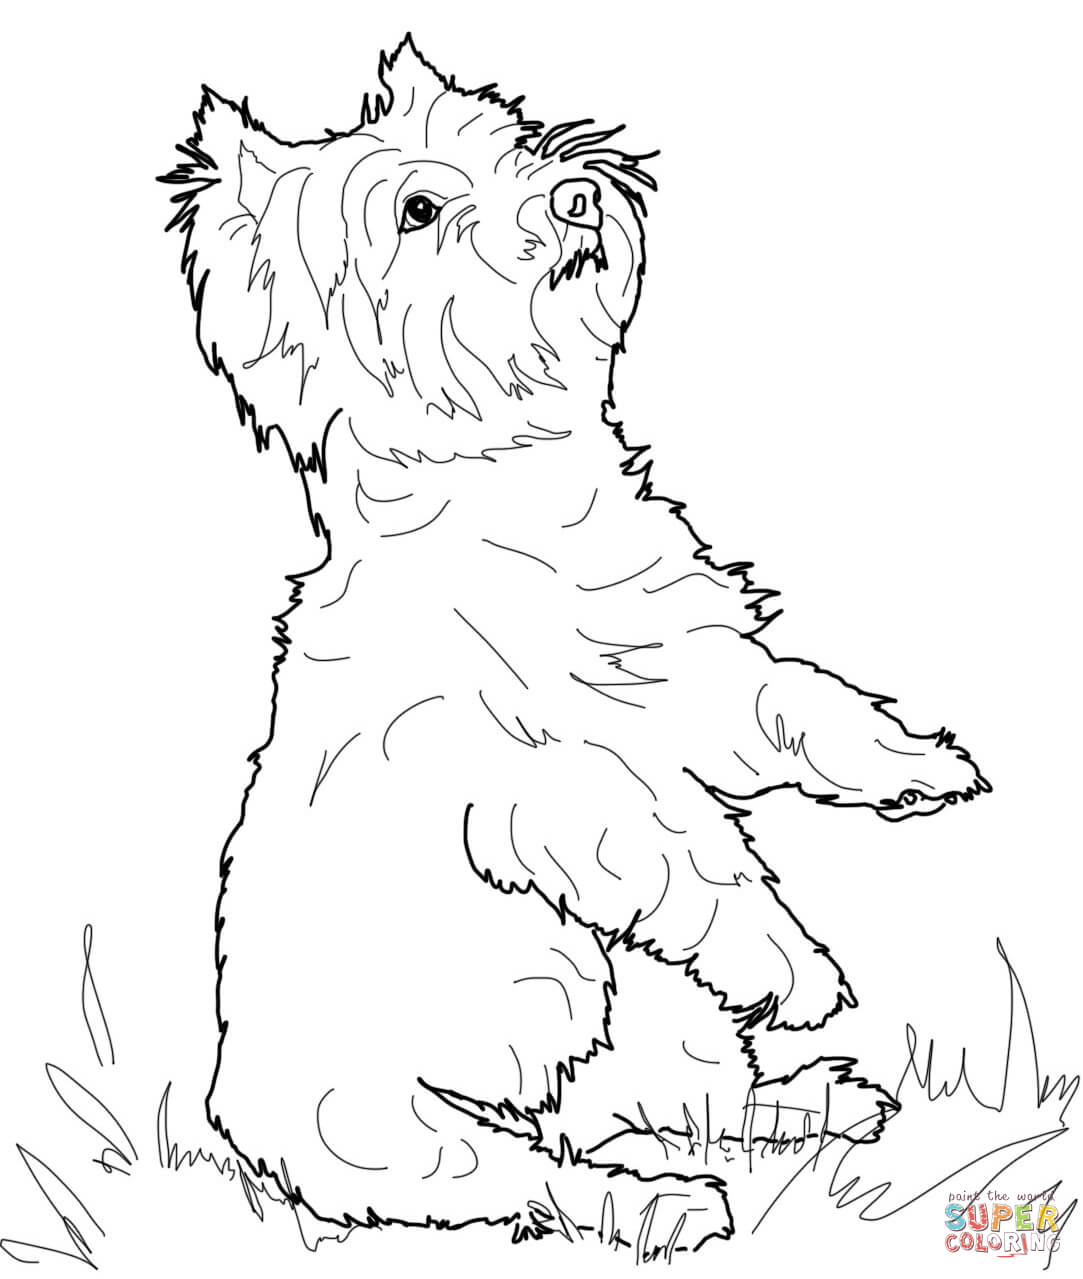 Cairn Terrier Drawing at GetDrawings com | Free for personal